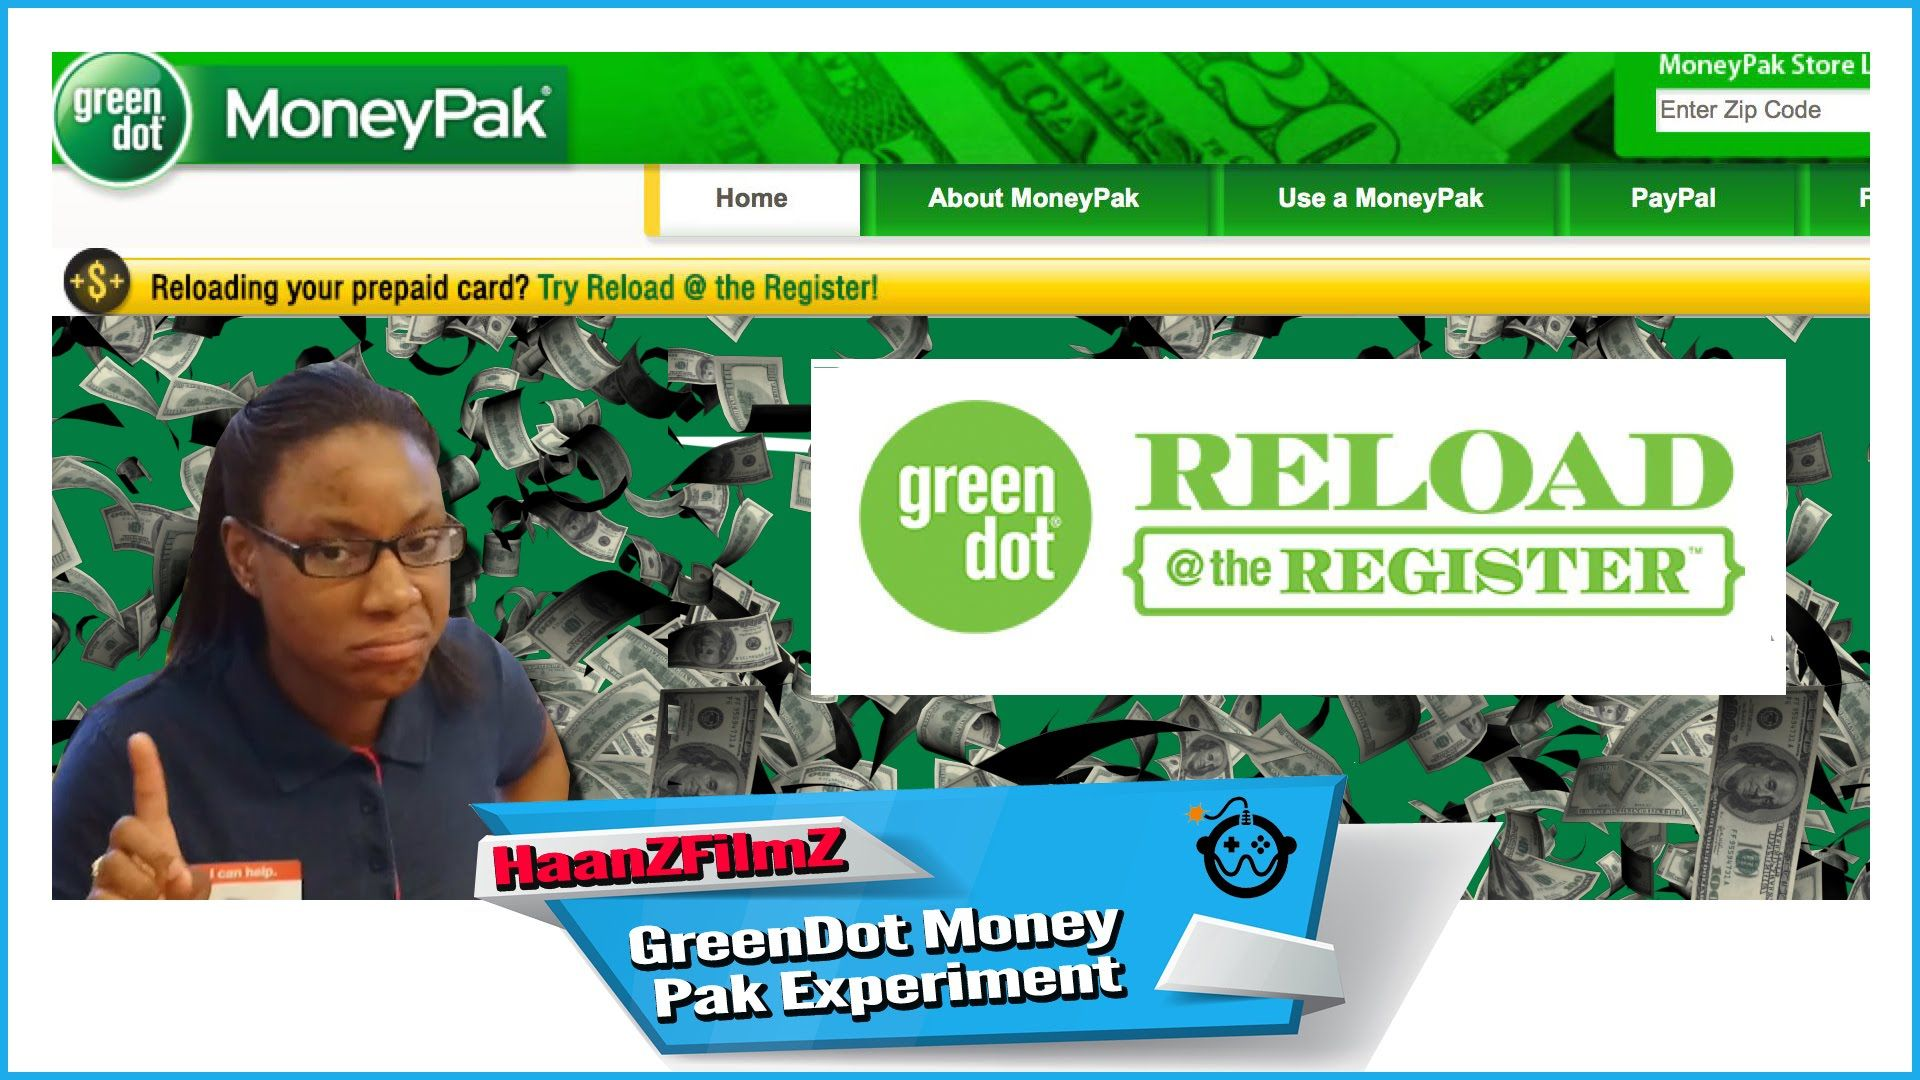 How To Take Money Off Green Dot Moneypak